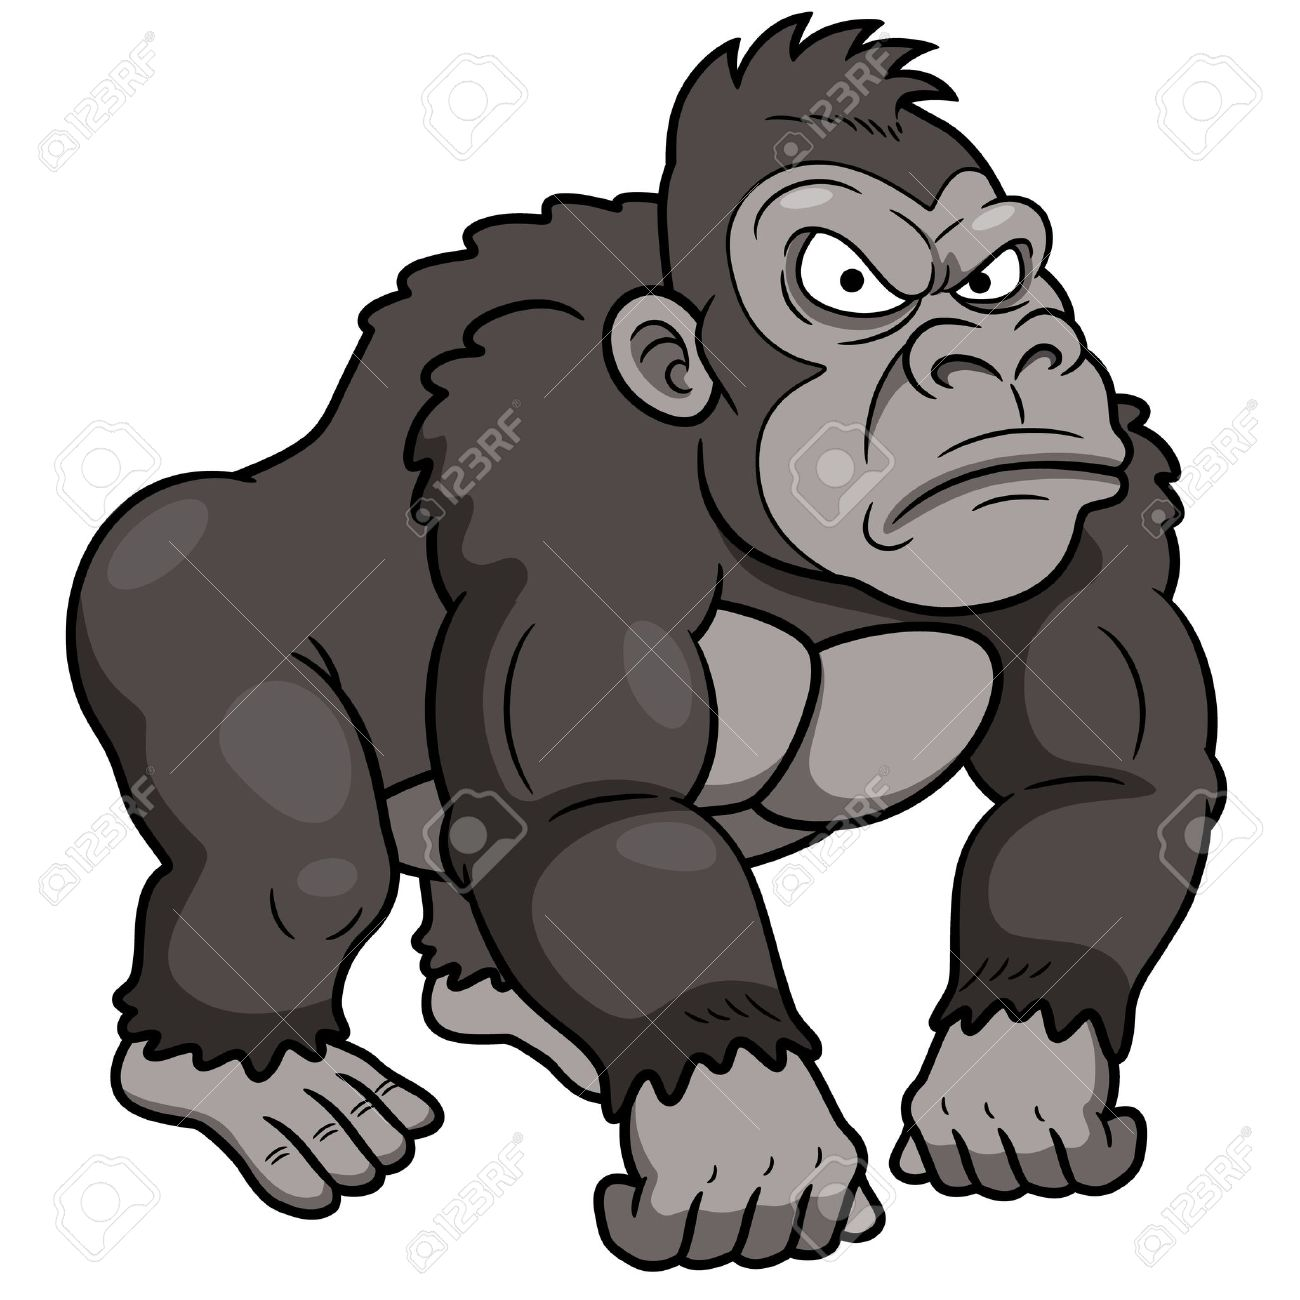 Gorilla Face Cartoon Gorilla Cartoon Illustration